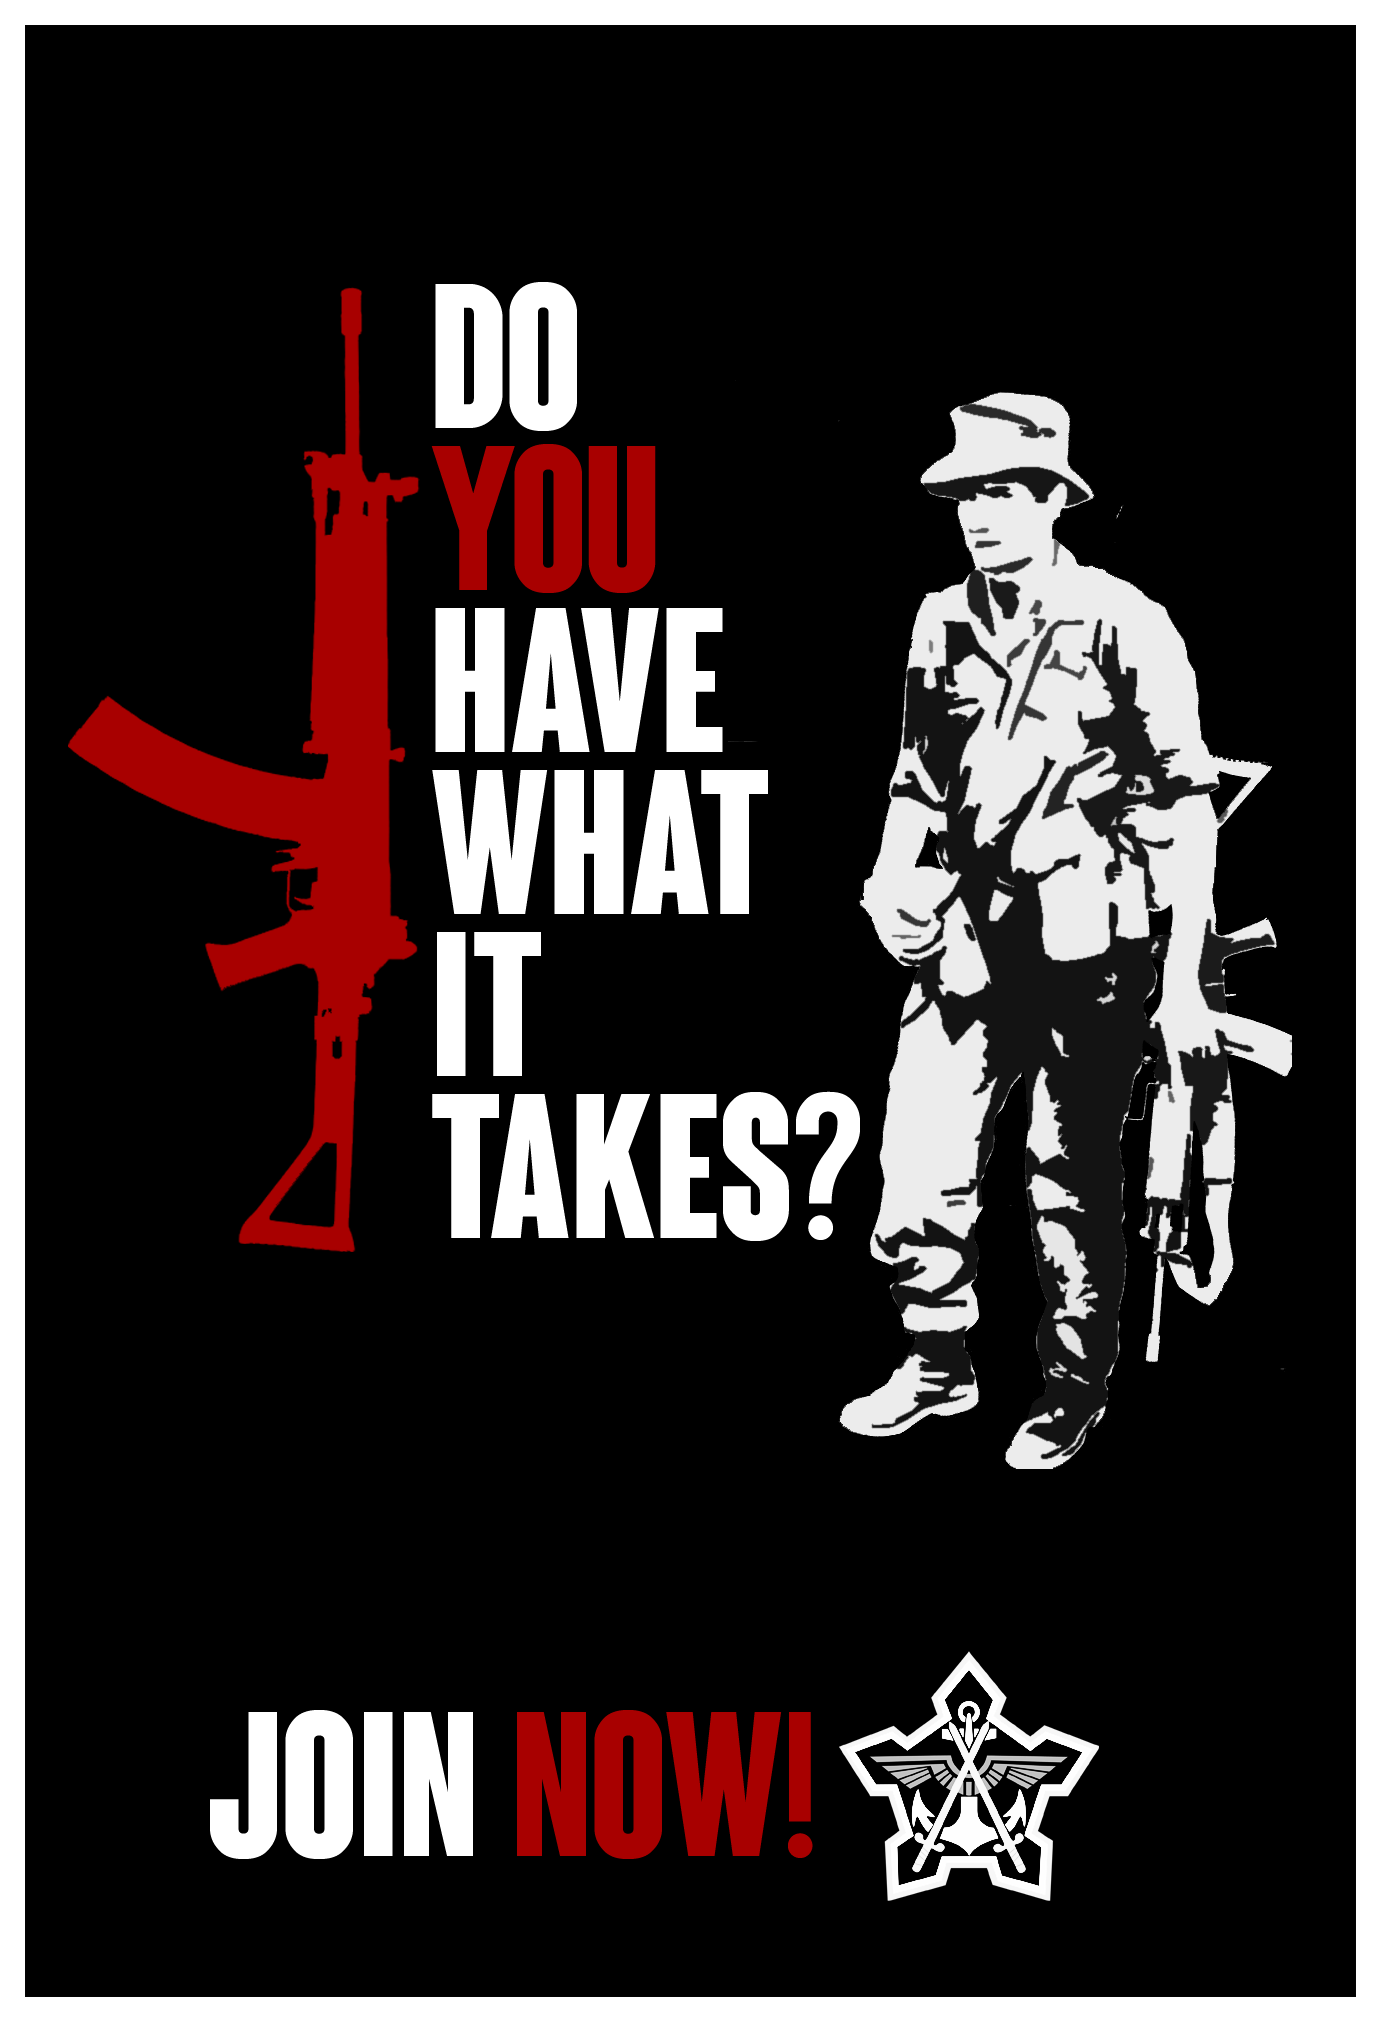 South_African_Defense_Force_Poster_3.png